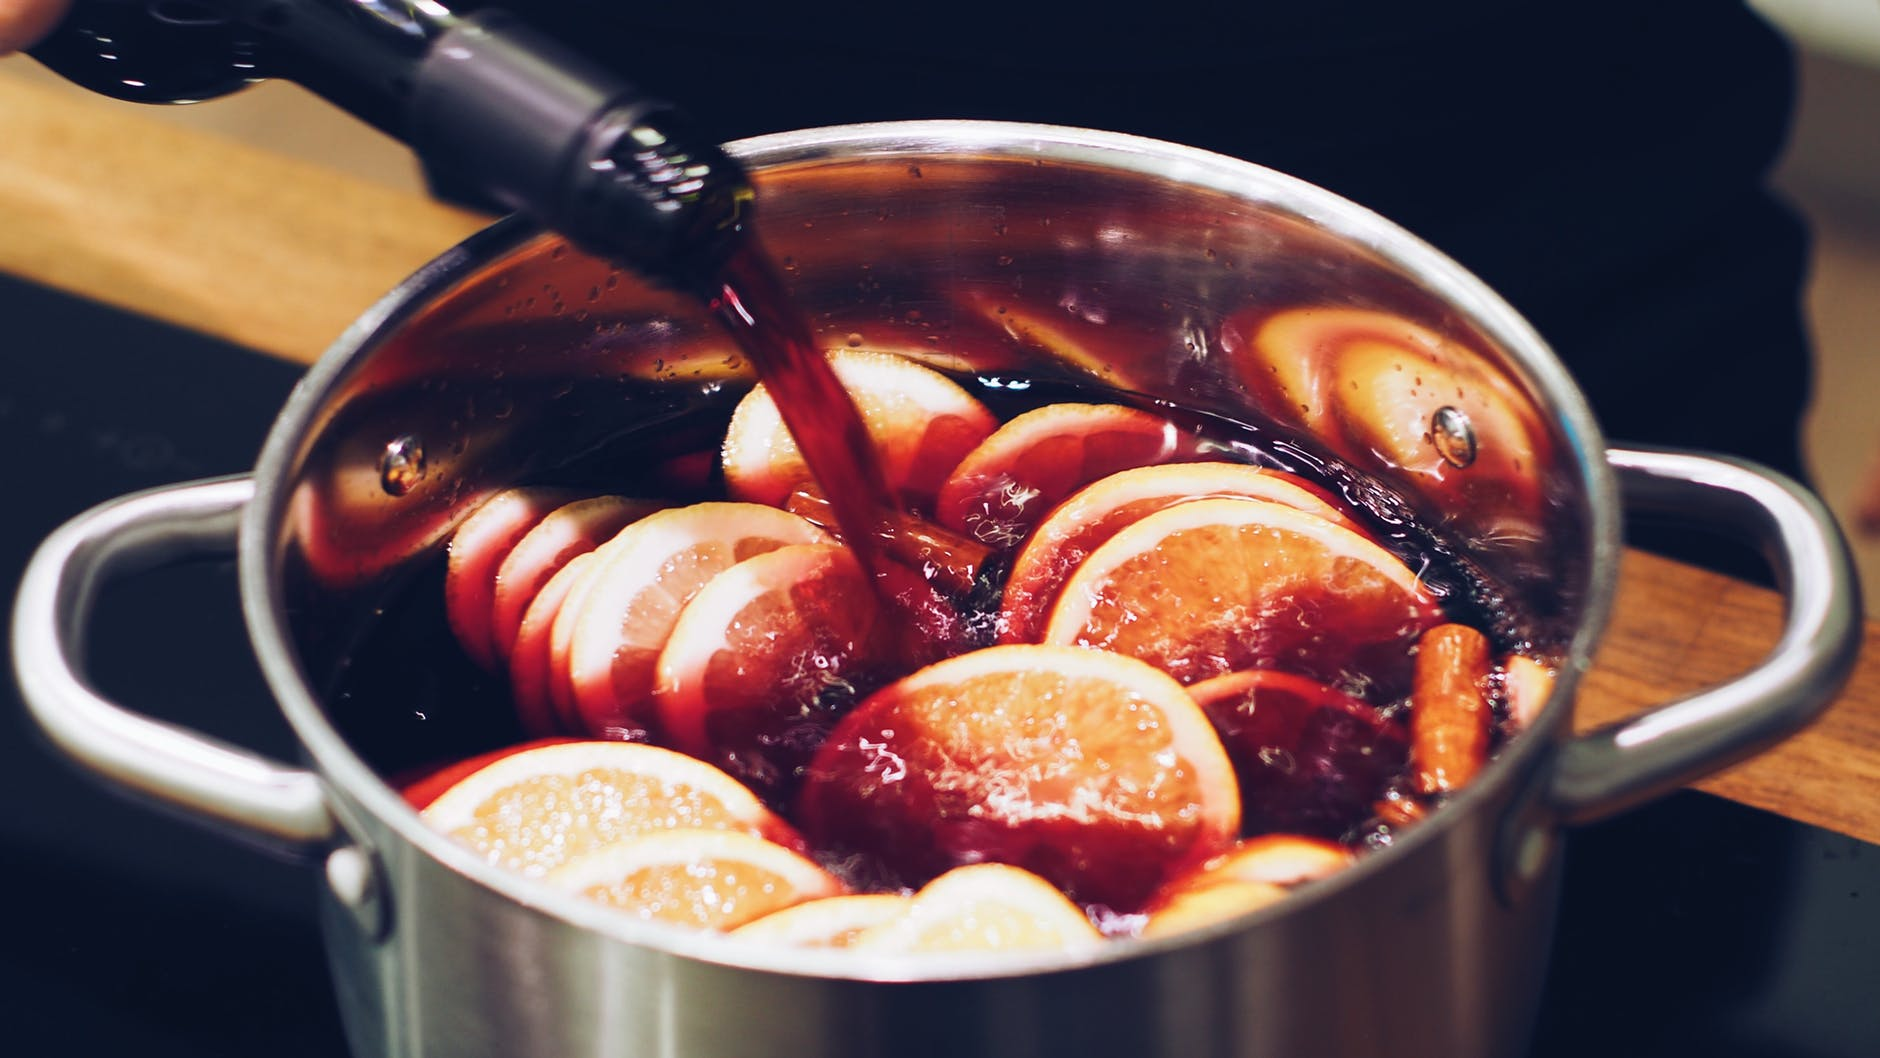 Red wine being poured into a saucepan filled with citrus fruit